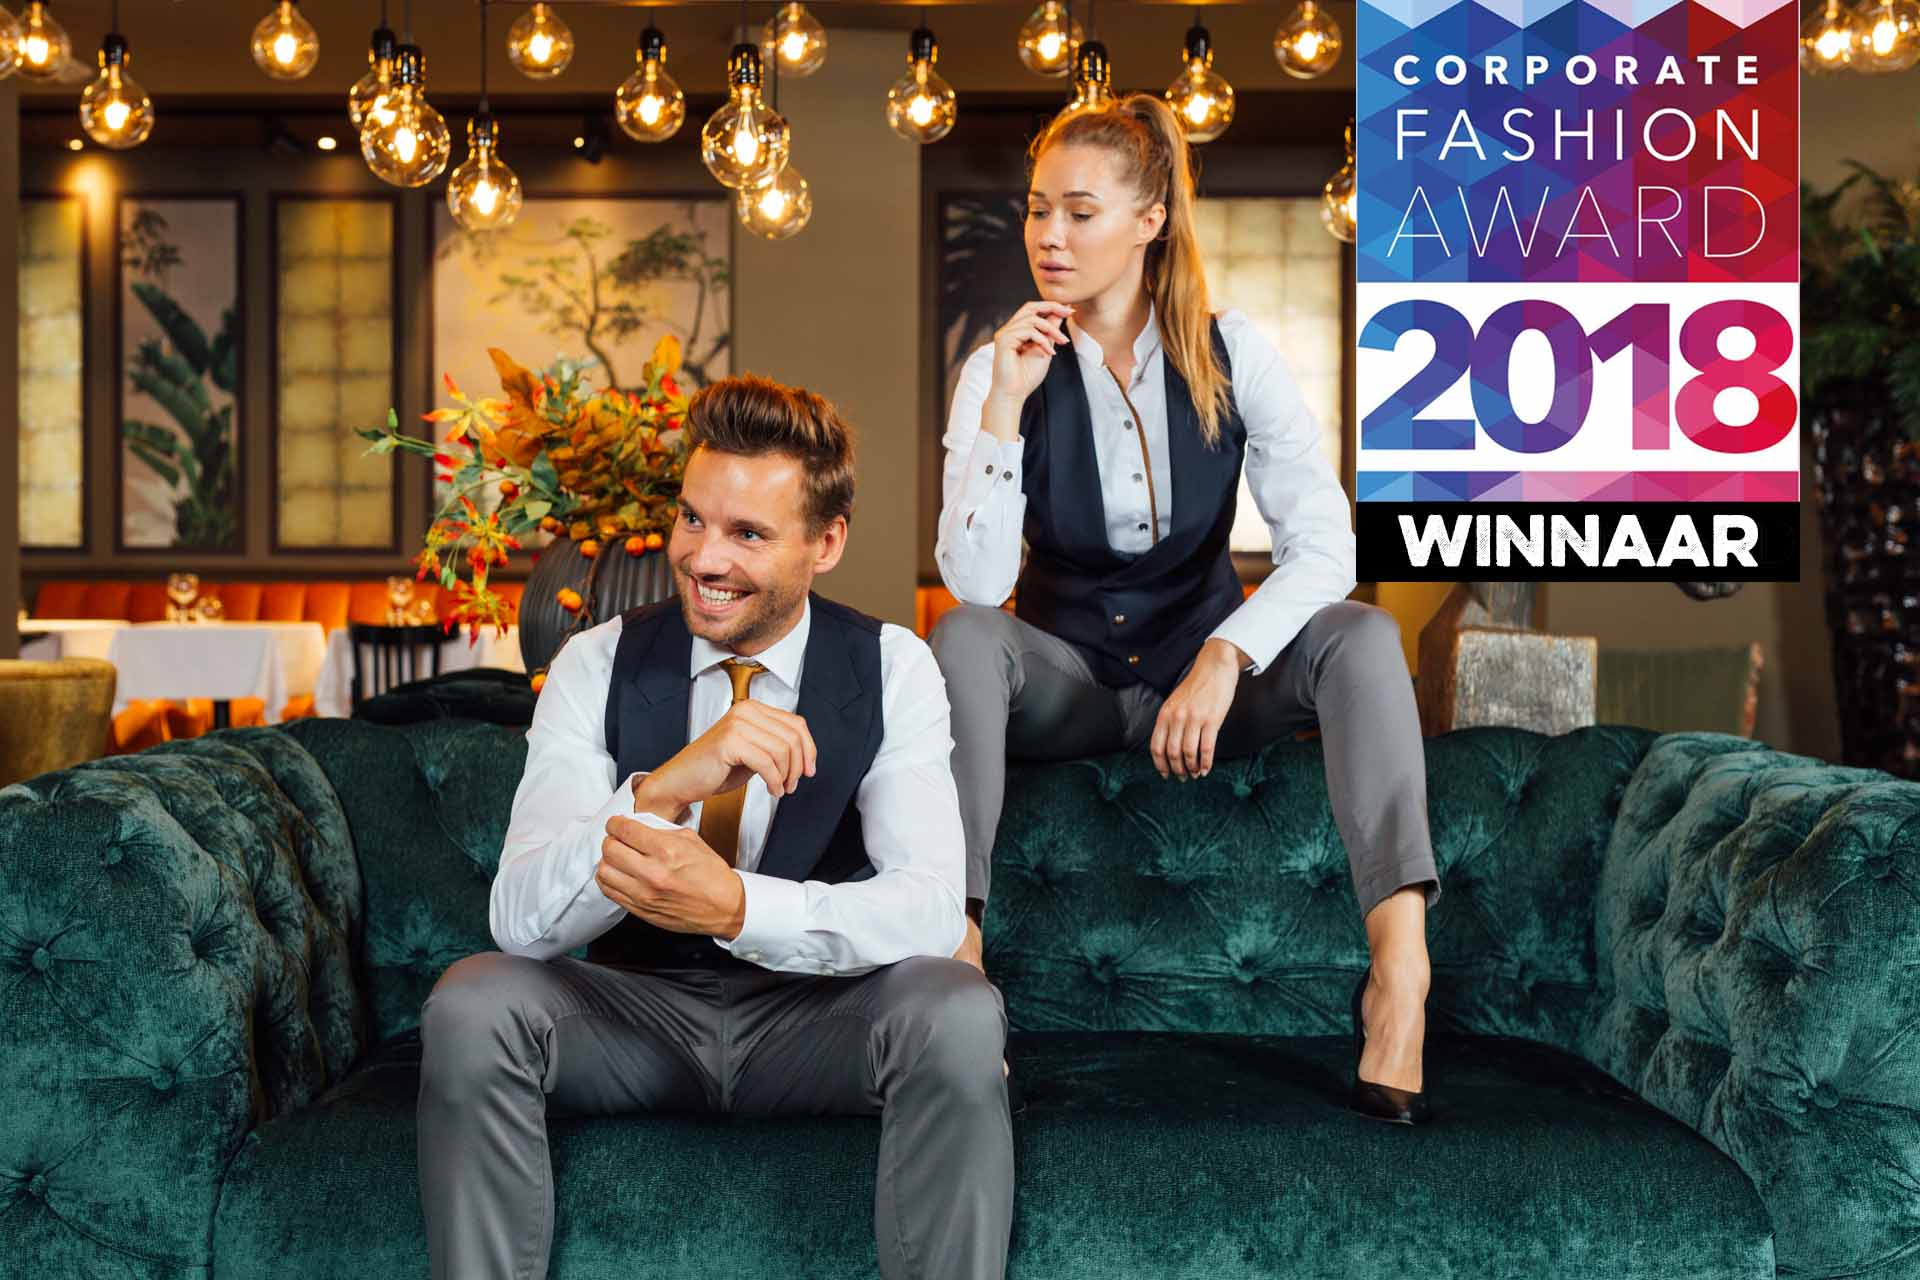 Corporate fashion award